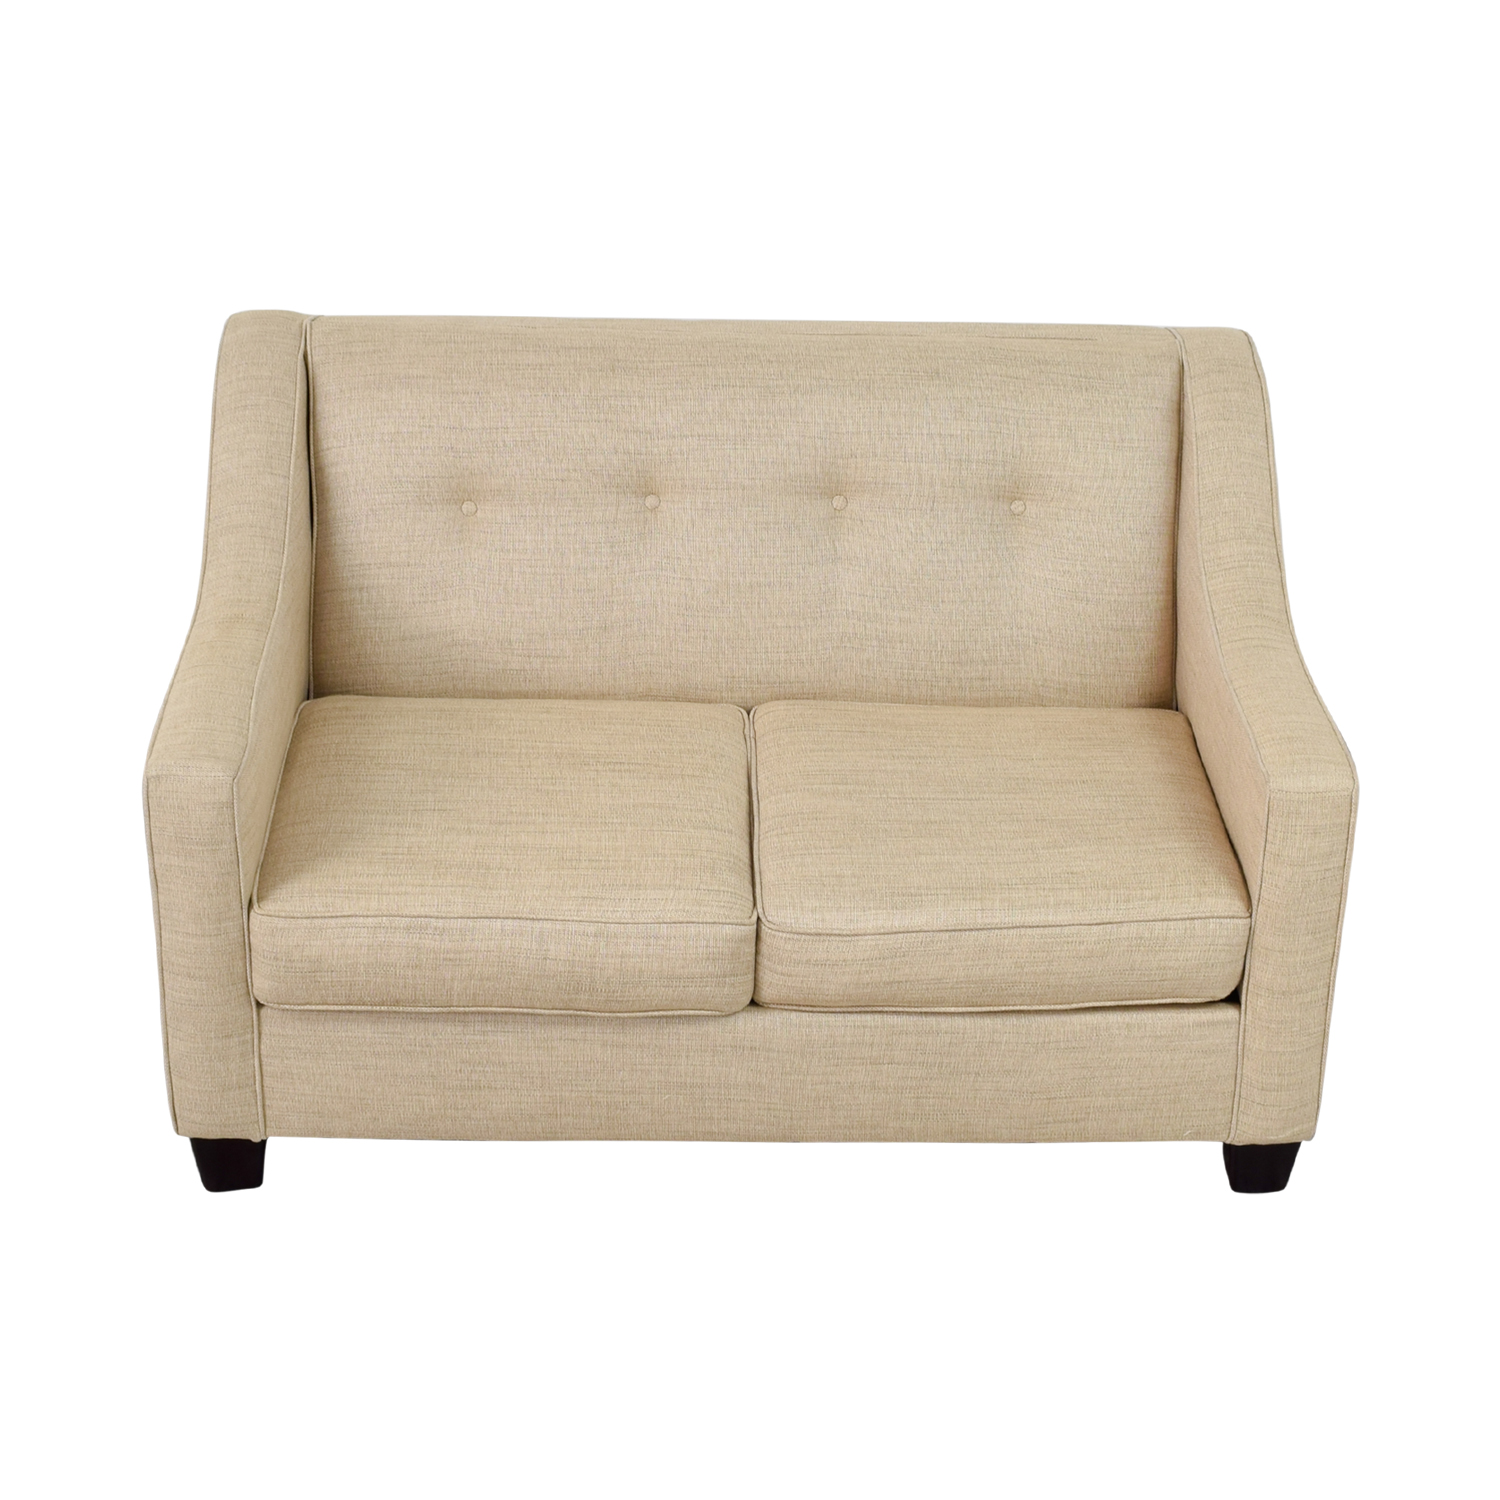 Bob's Furniture Bob's Furniture Caleb Tan Tufted Back Loveseat coupon